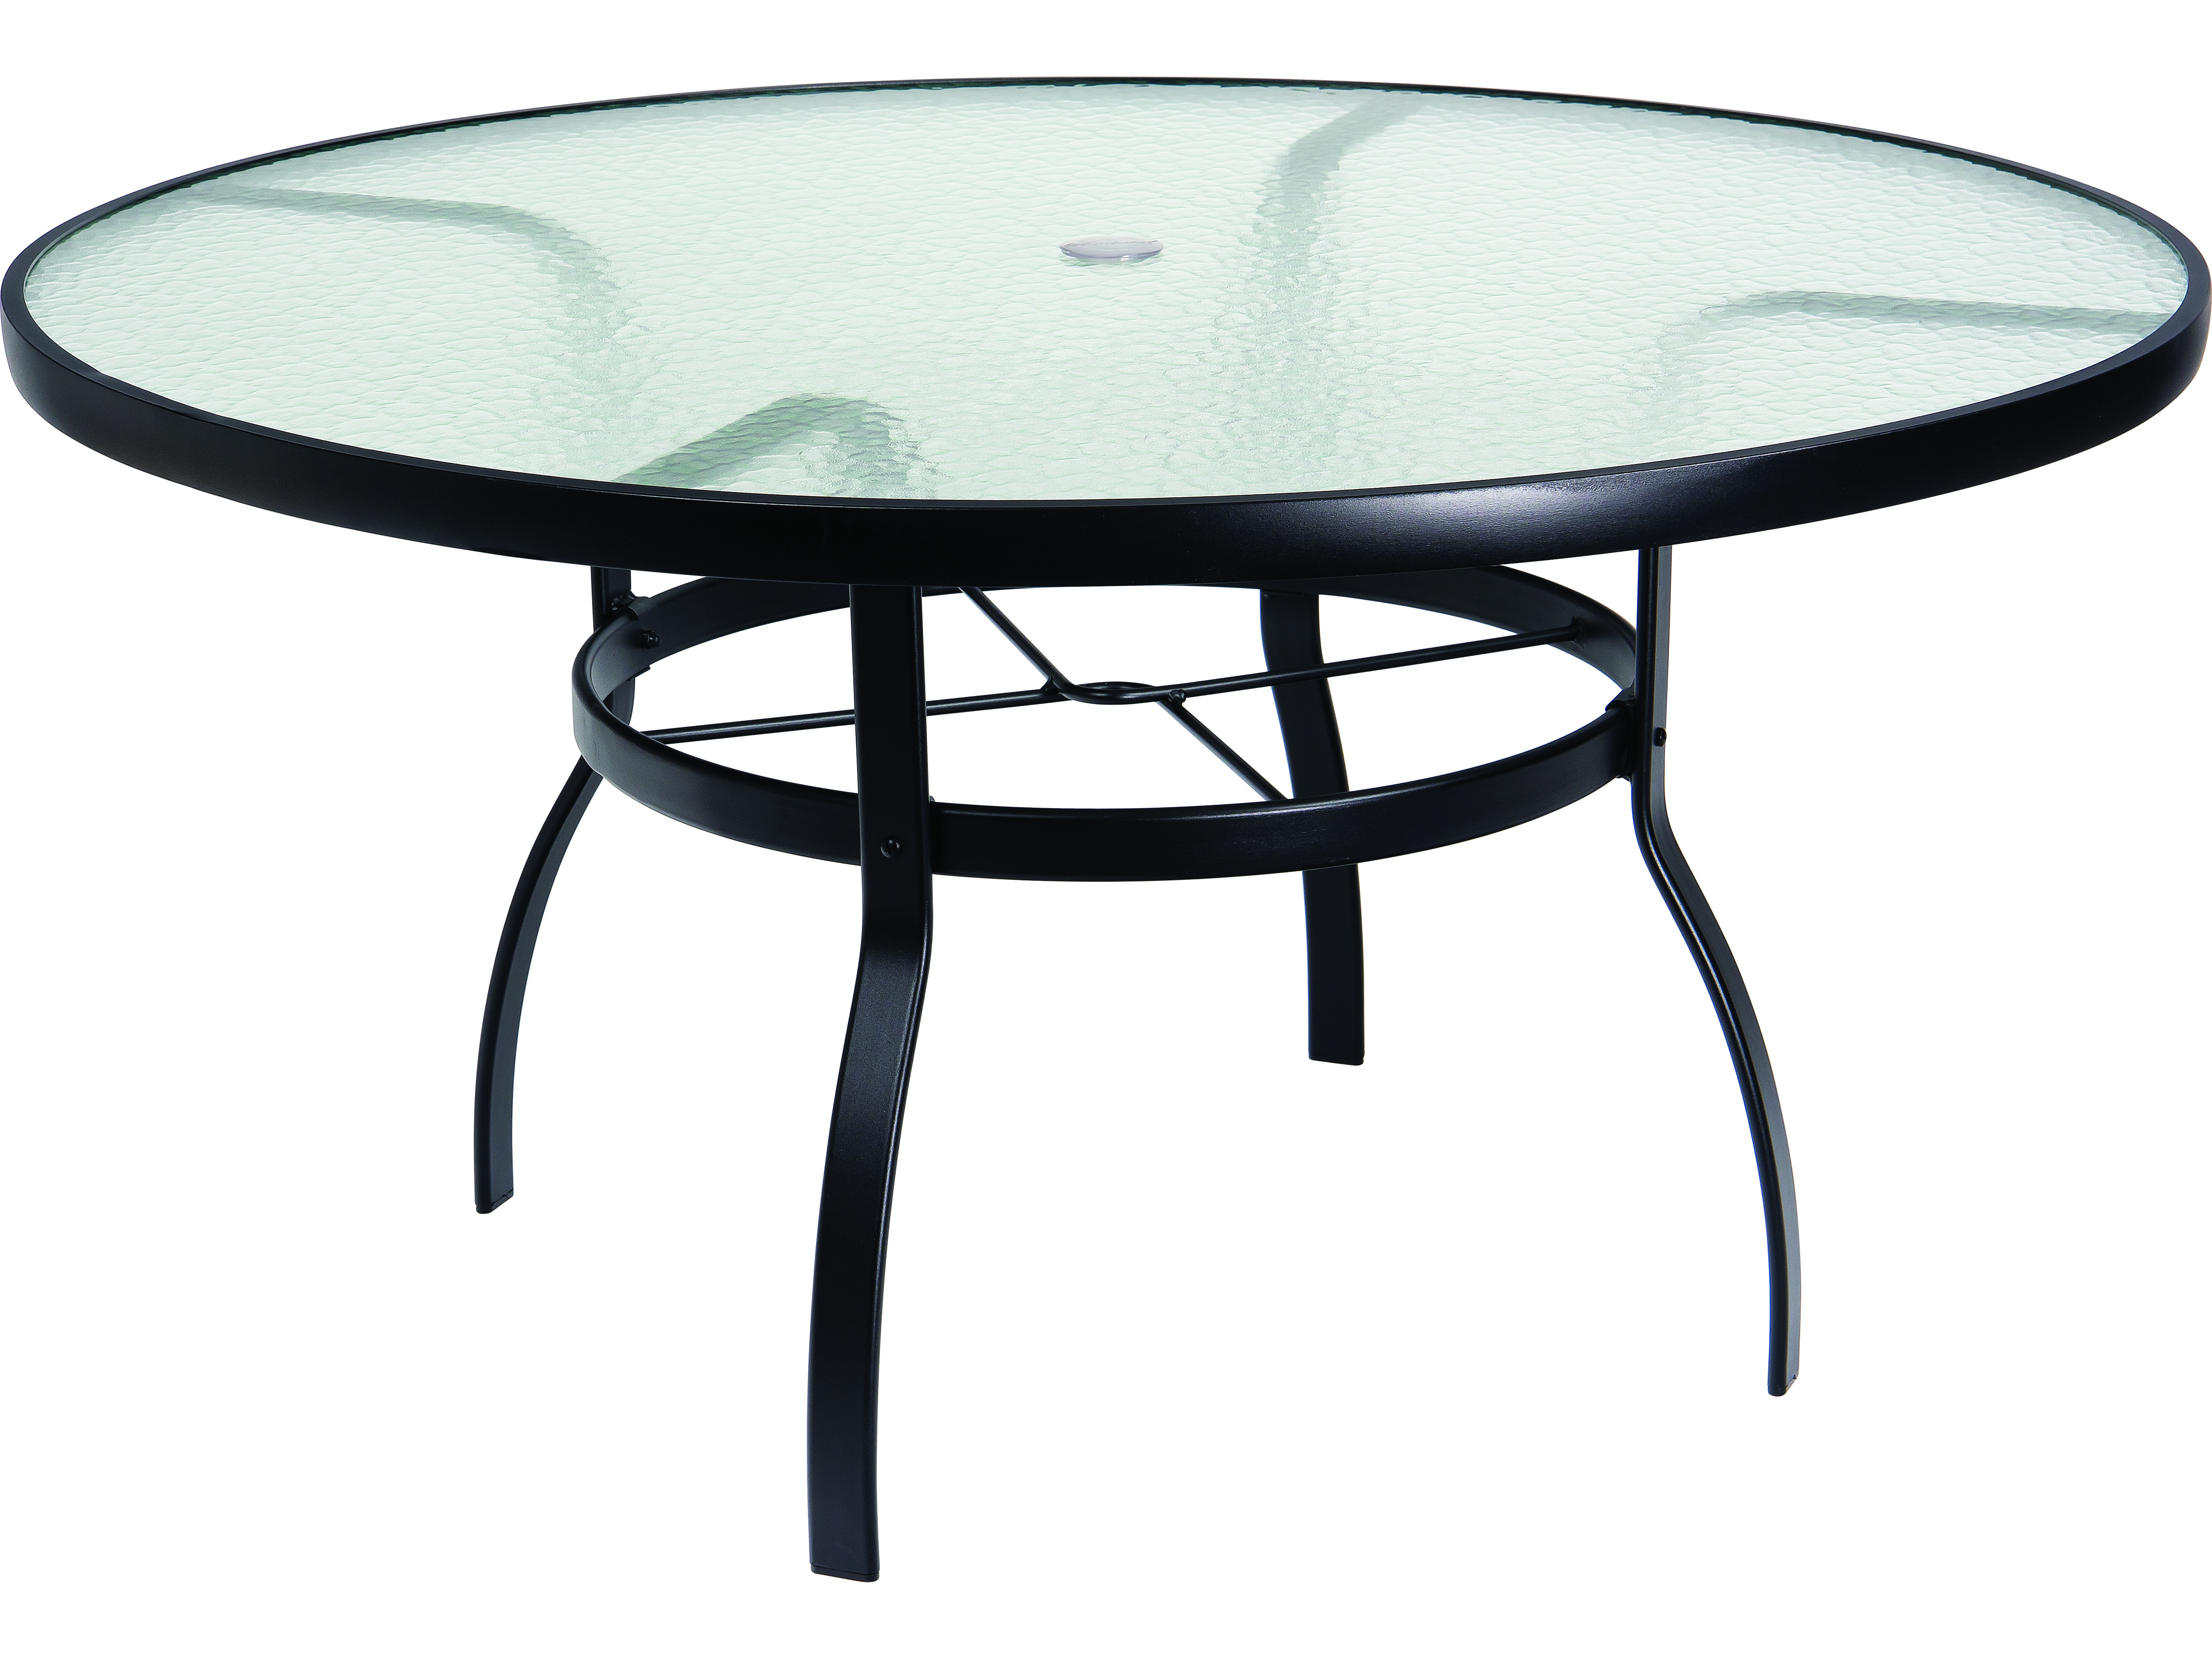 woodard deluxe aluminum 54 round obscure glass top table with umbrella hole 826154w. Black Bedroom Furniture Sets. Home Design Ideas